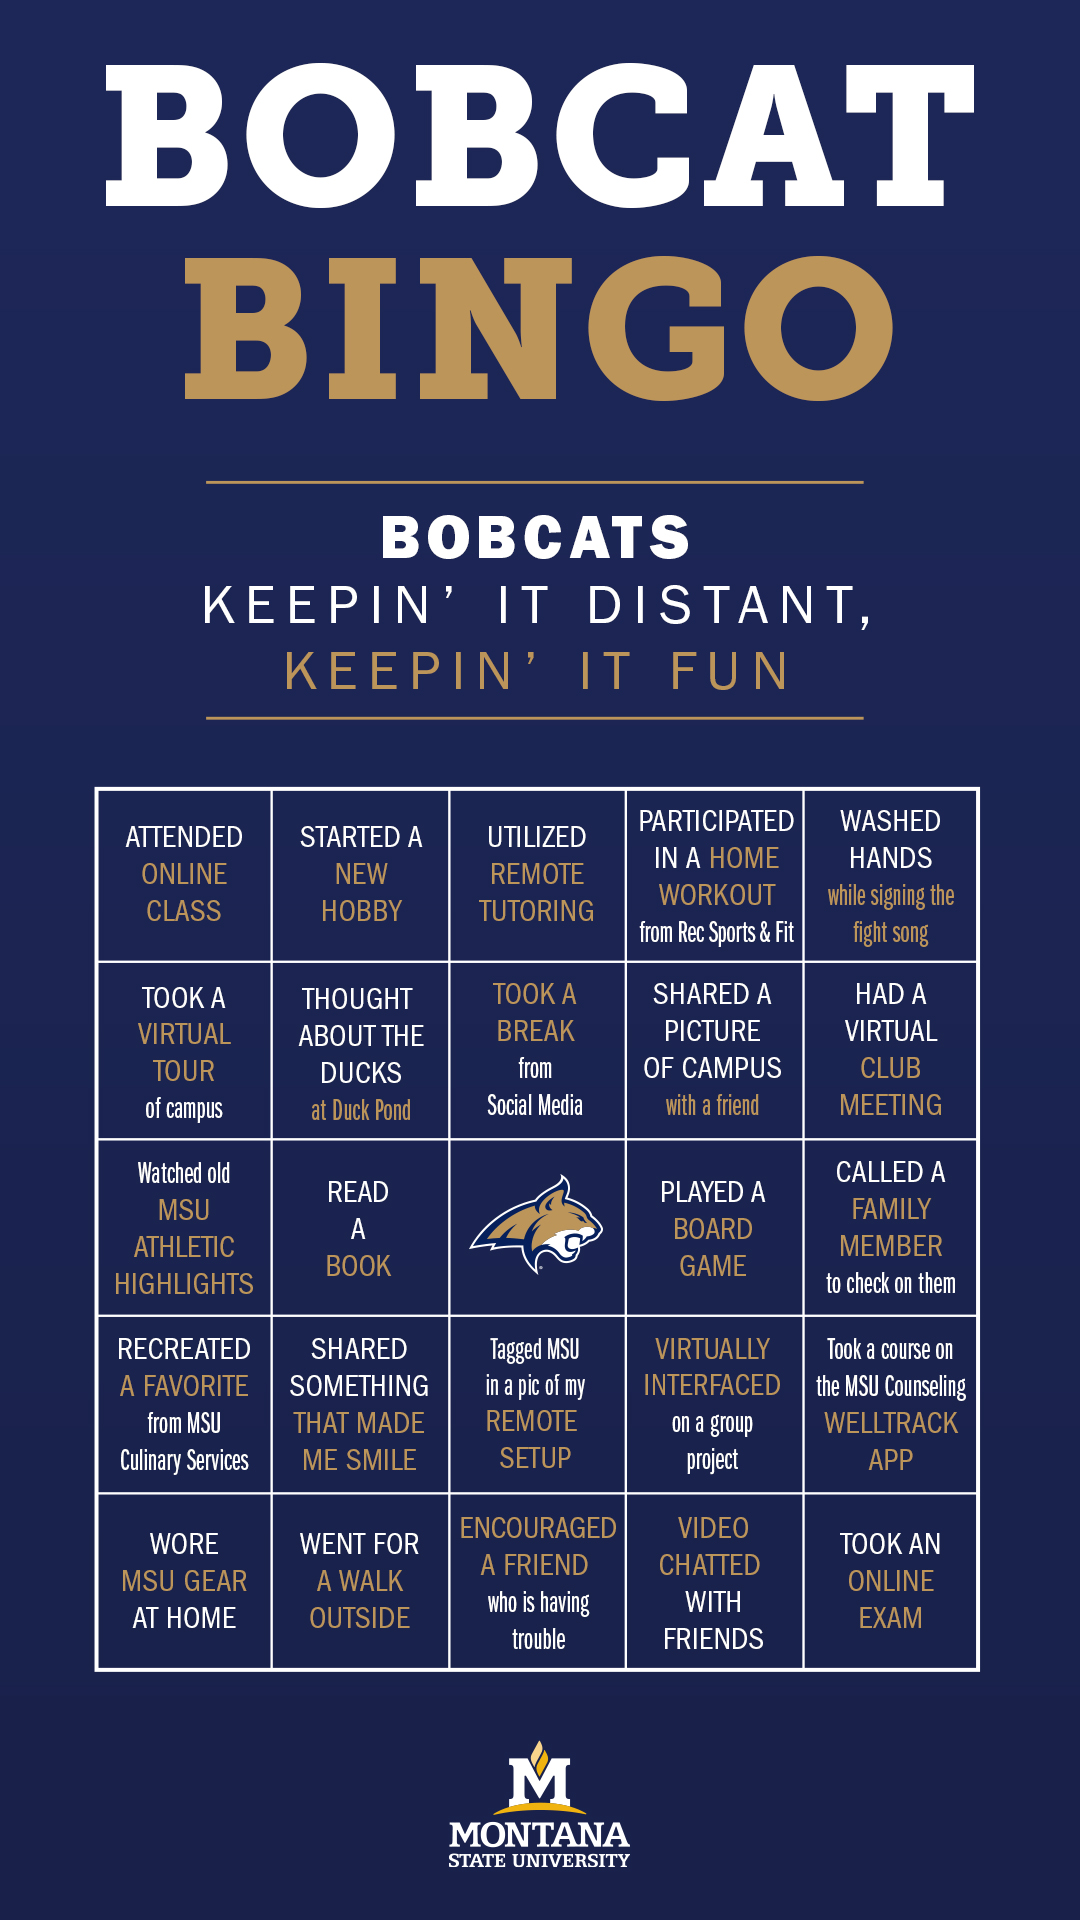 Bobcat Bingo board for activites related to quarantine, remote classwork and social distancing.